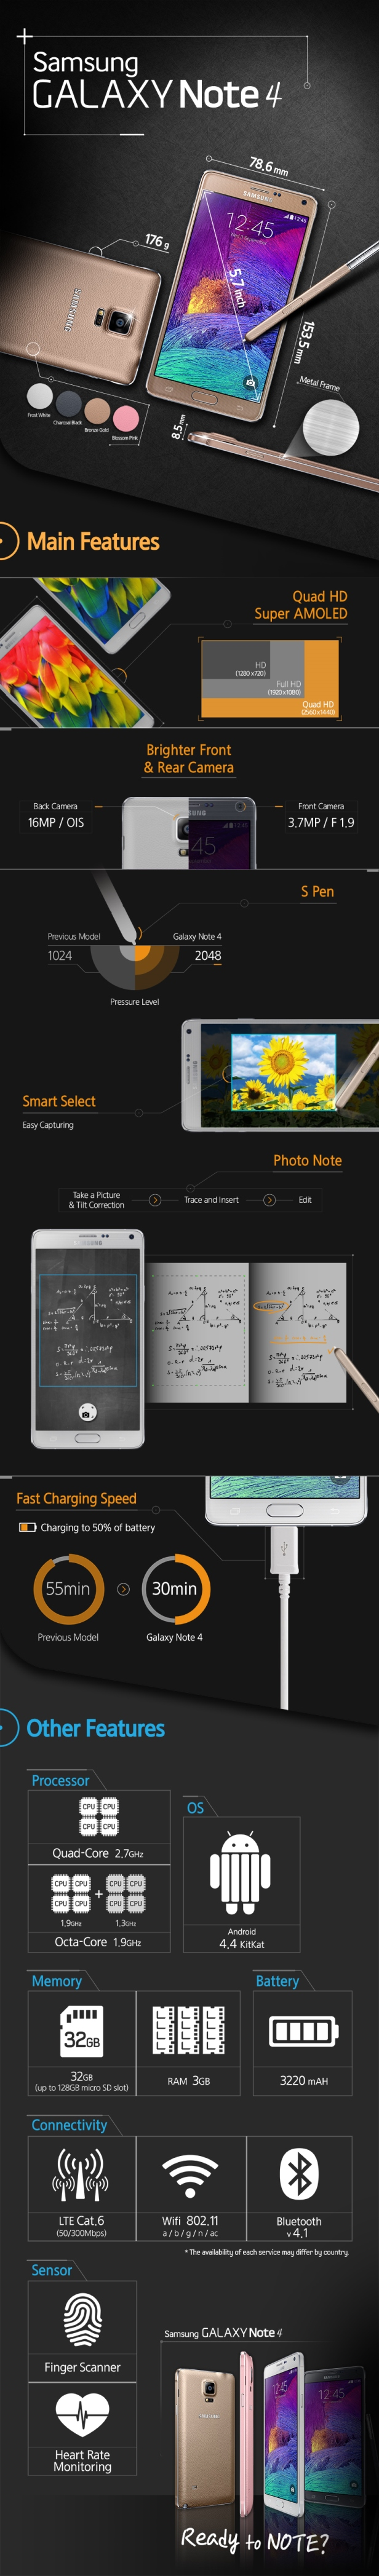 Samsung-Galaxy-Note-4-Infographic-full